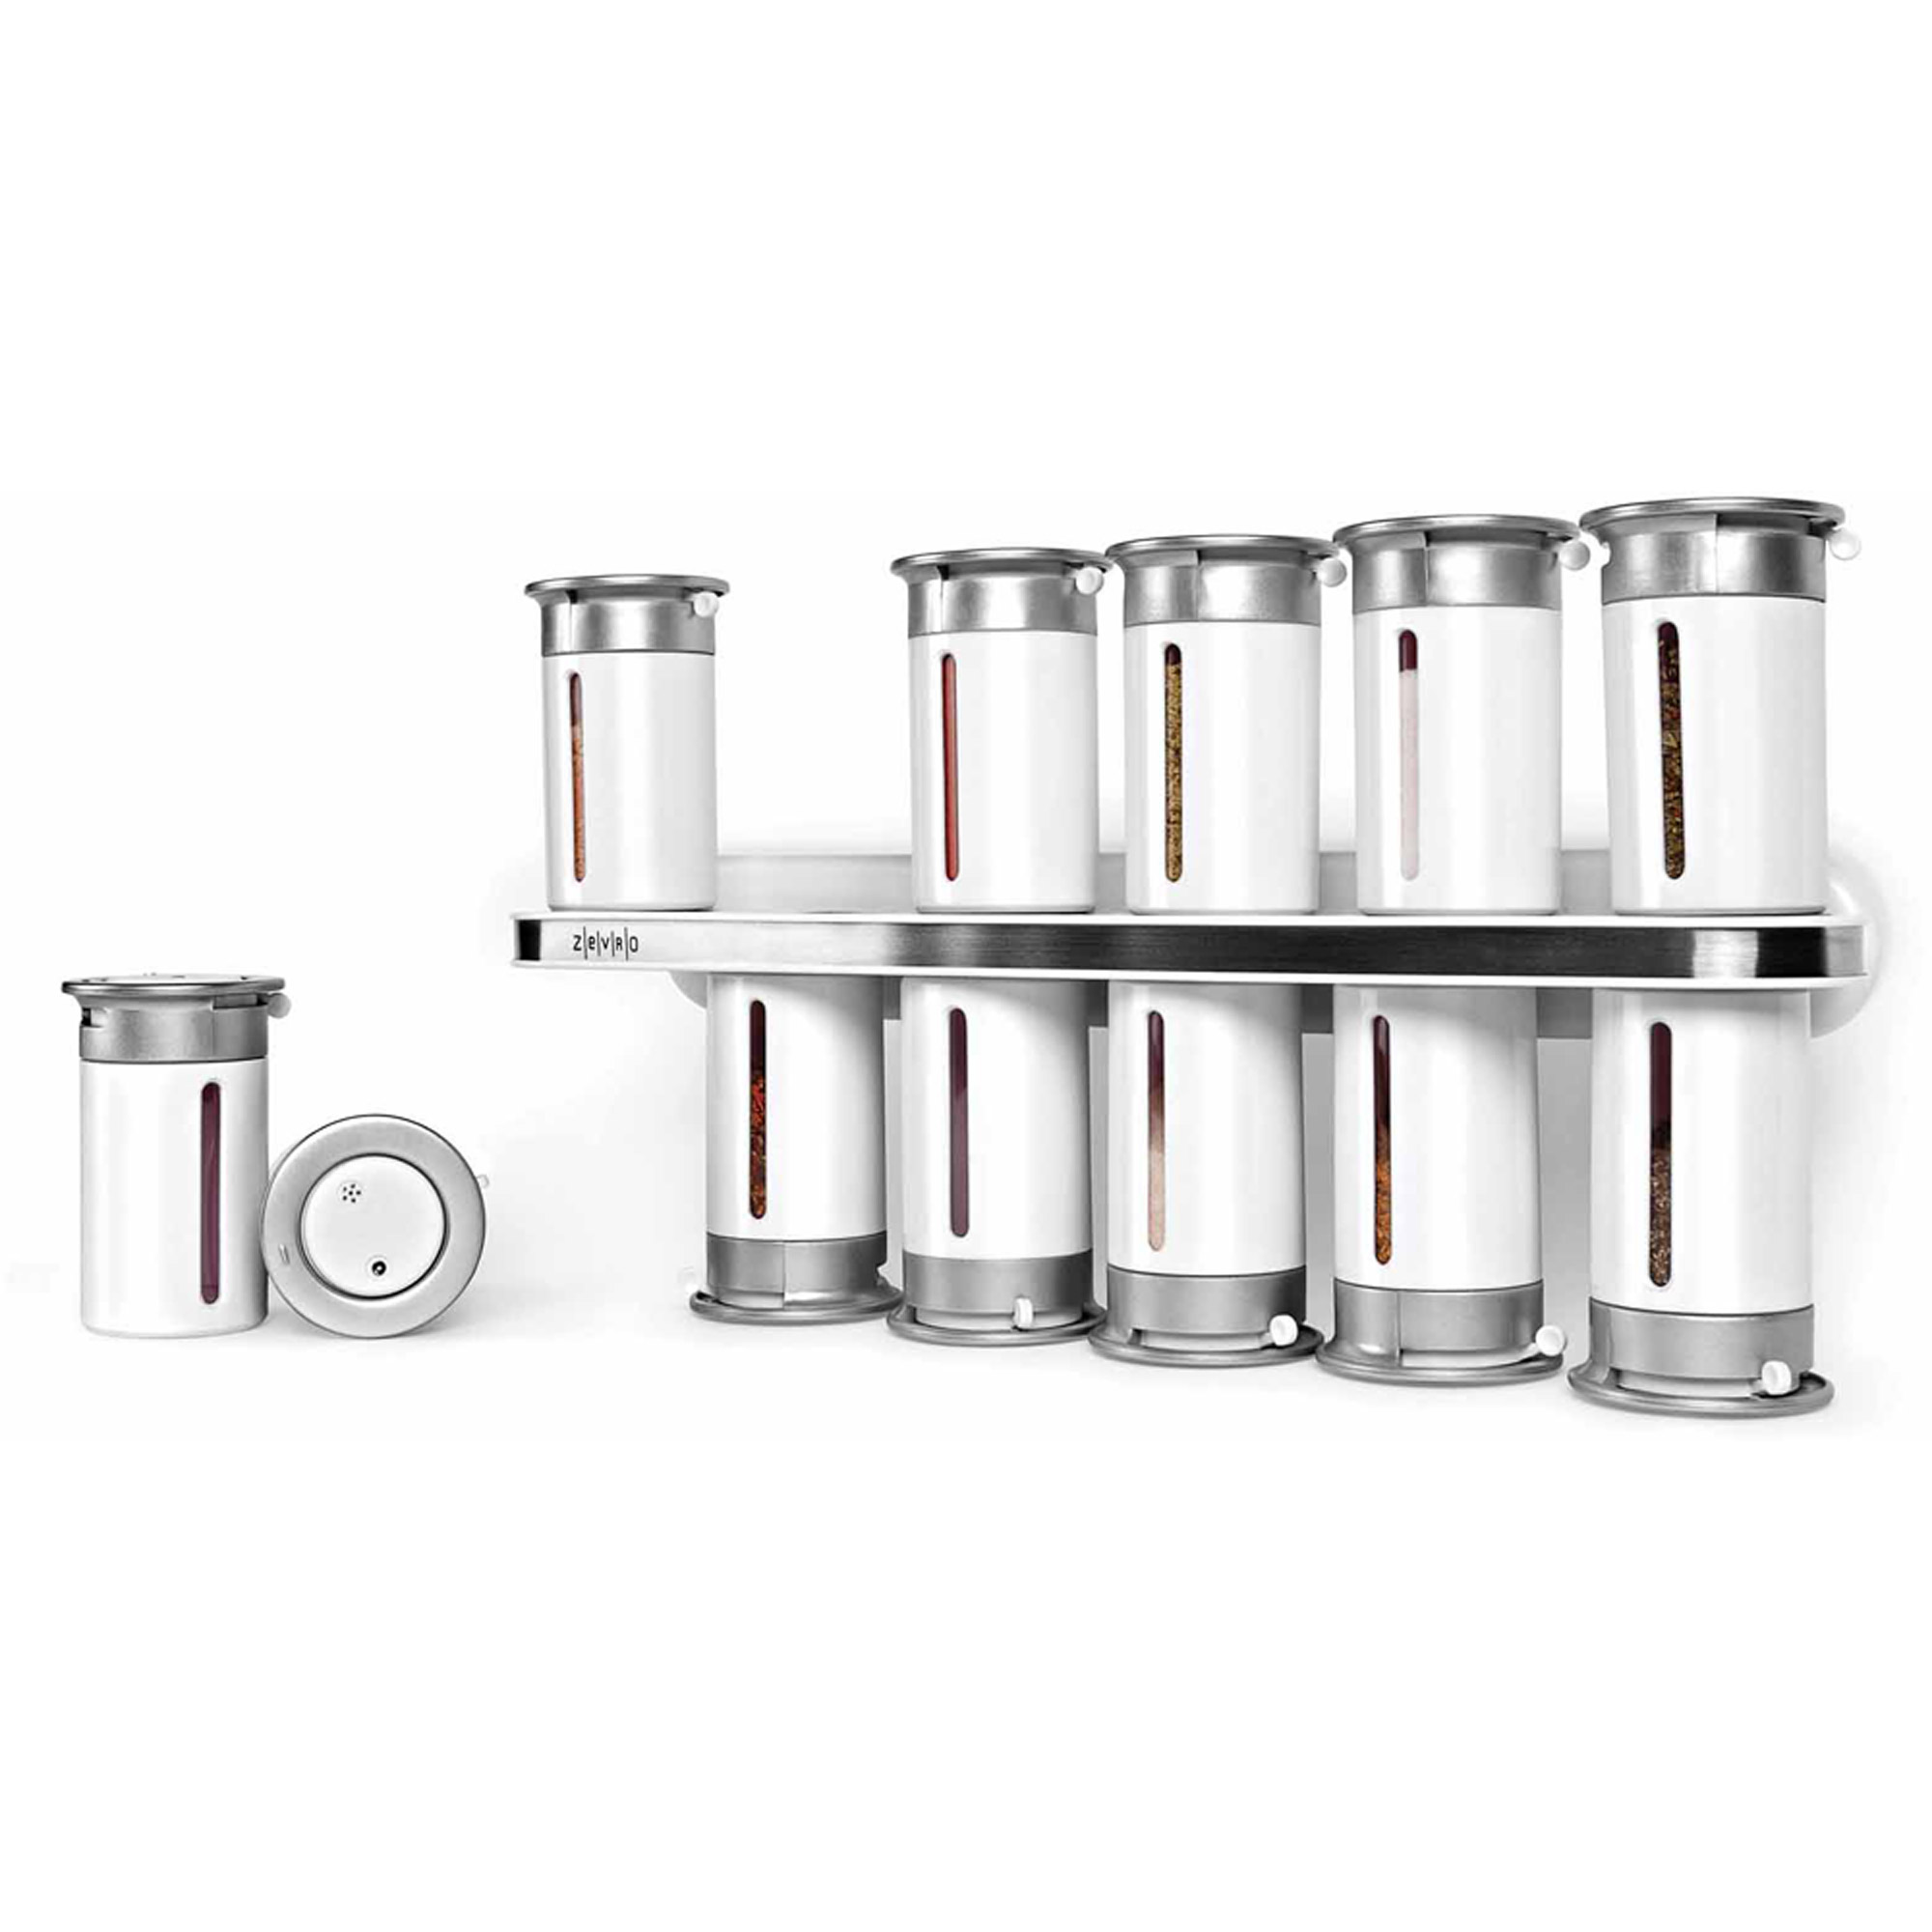 Zevro by Honey-Can-Do 12 Canister Zero Gravity Wall-Mount Magnetic Spice Rack